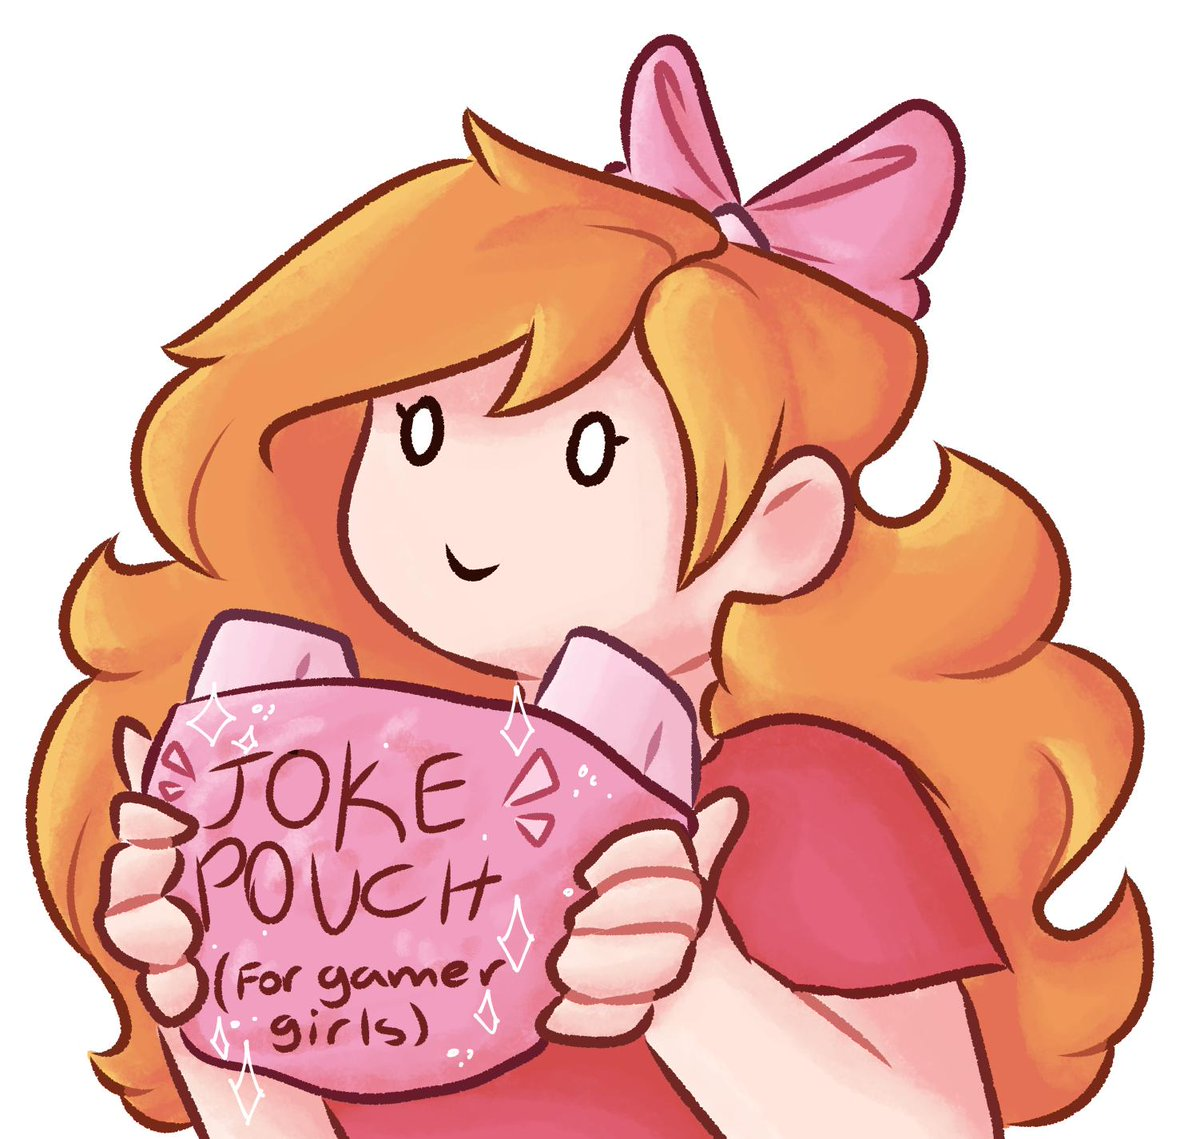 Some #snapstreamart of Penny with her Joke Pouch (for gamer girls)™! <br>http://pic.twitter.com/3cXj11rCJm